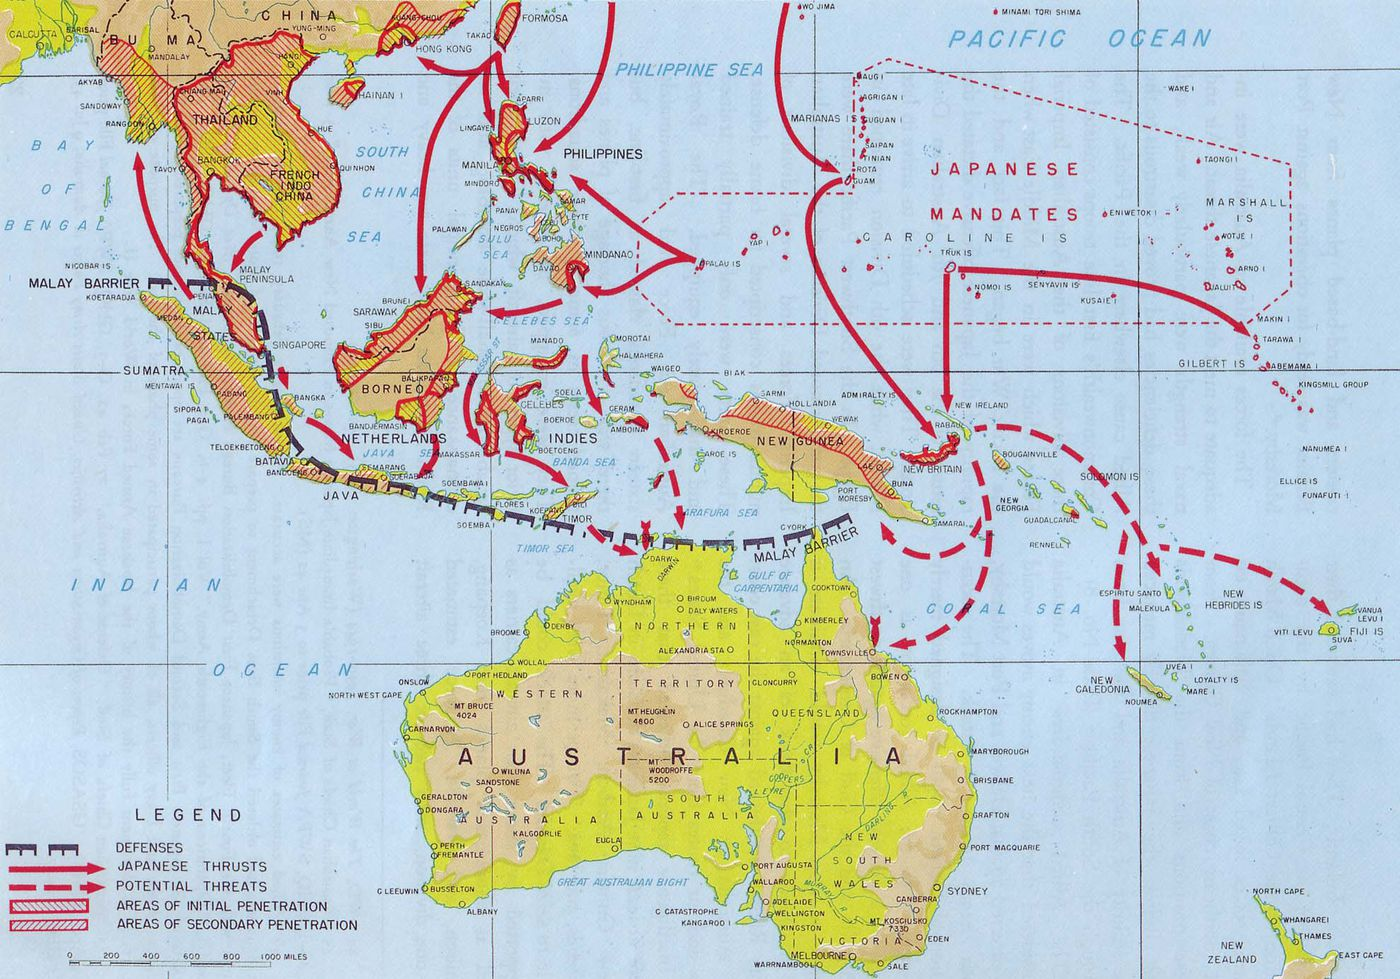 42 maps that explain World War II - Vox Map Of Snia Ww on map of 18th century, map of concentration camps, map of police, map of aviation, map of truman dam, map of allied powers wwii, map of ww1, map of air force, map of halloween, map of england, map of 1950s, map of lebanon 1982, map of tv, map of fun, map of philosophy, map of usa, map of stalingrad, map of greece, map of europe, map of ww11,